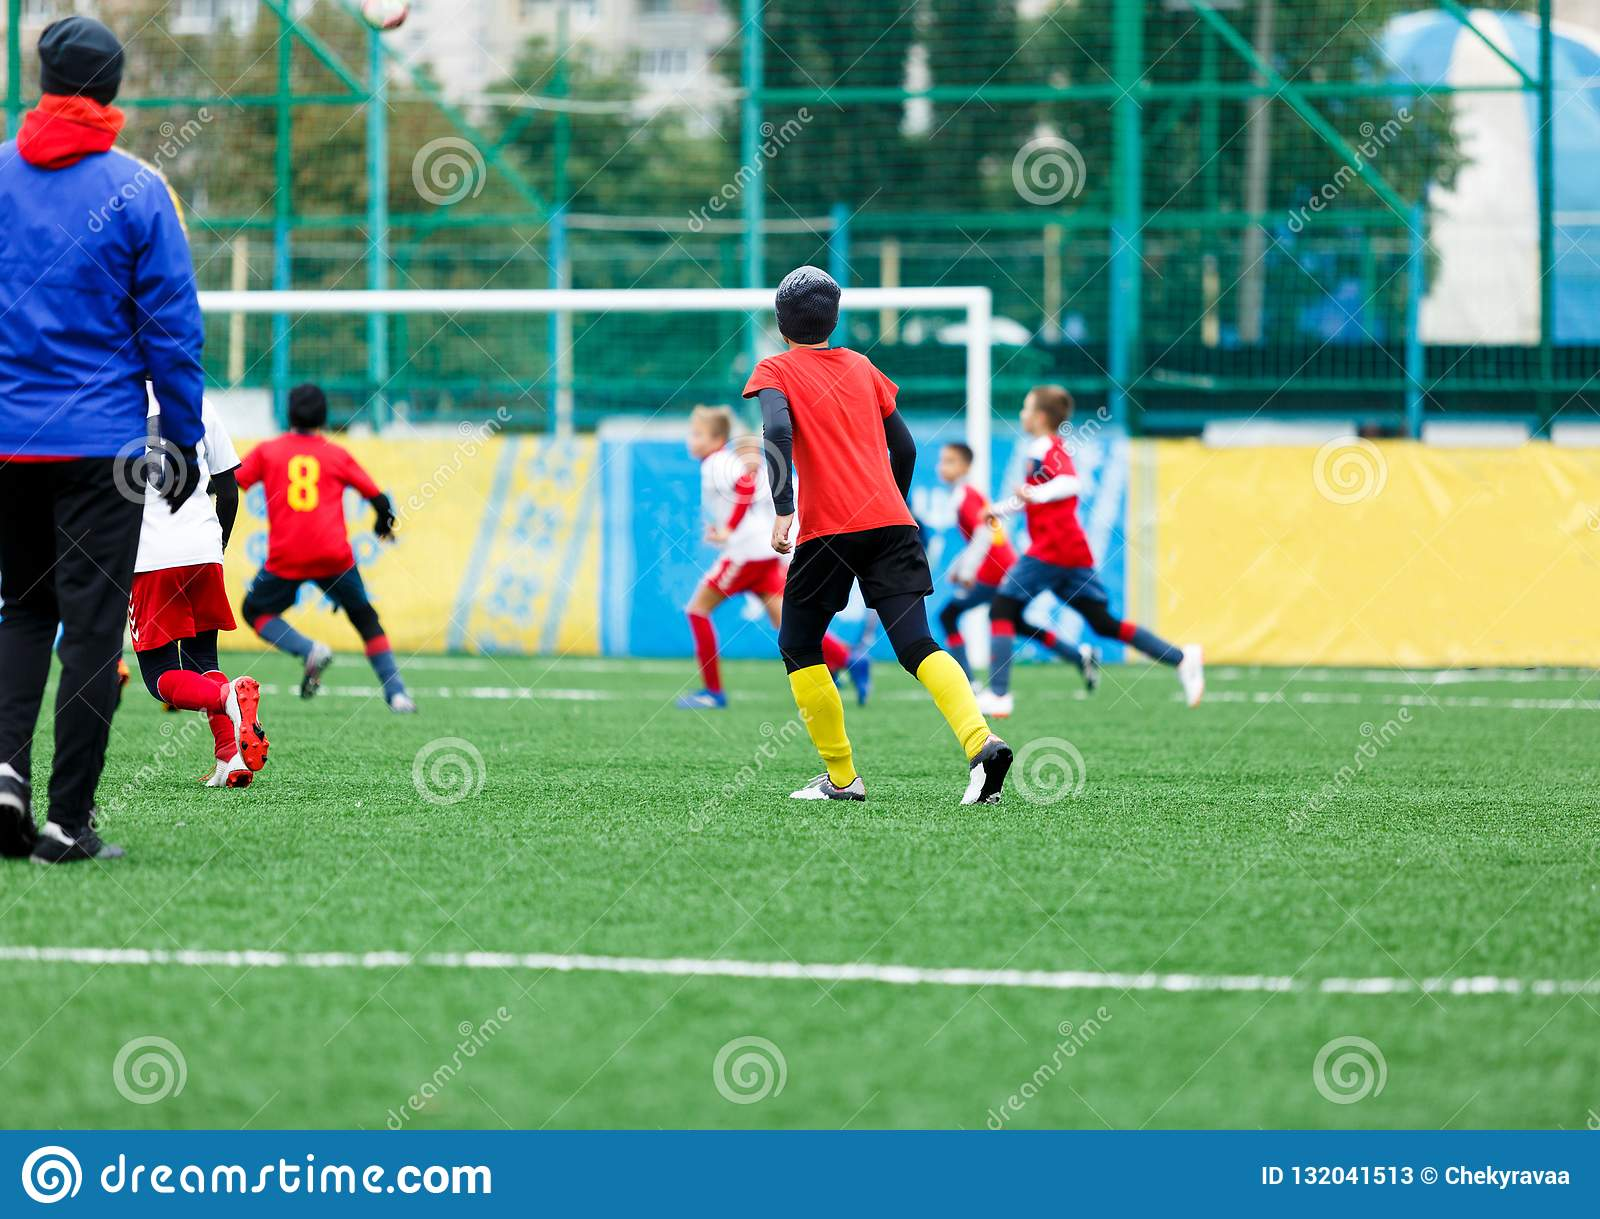 Football teams - boys in red, blue, white uniform play soccer on the green field. boys dribbling. dribbling skills. Team game